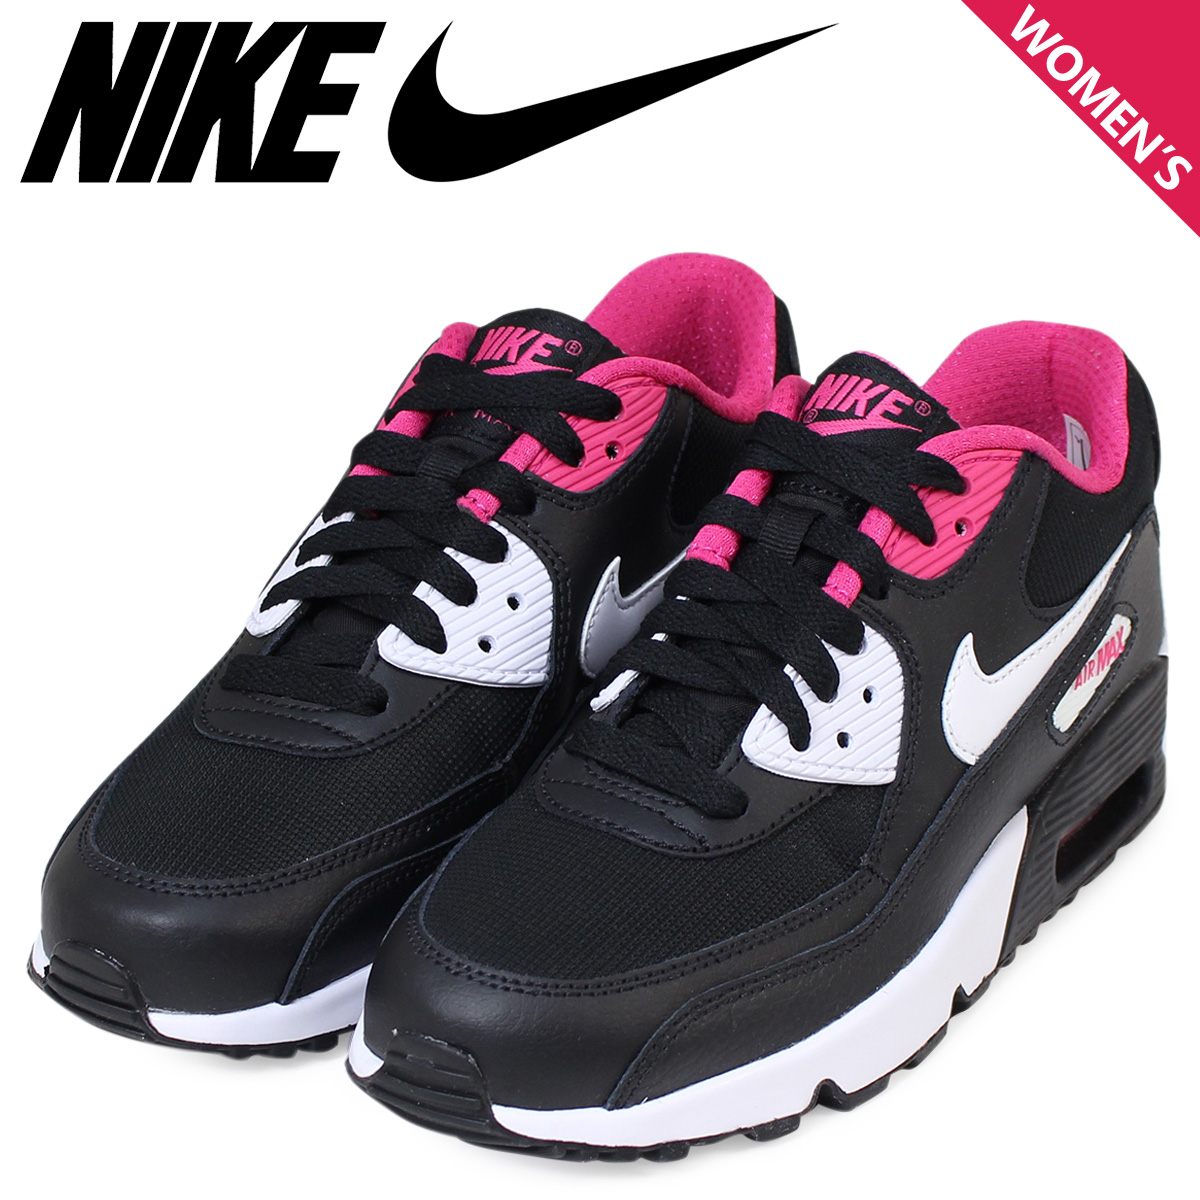 brand new 7f00a 37152 The origin of the name comes from the Greece myths of one Jeff Johnson saw in  the dream, victory goddess Nike (Nike).